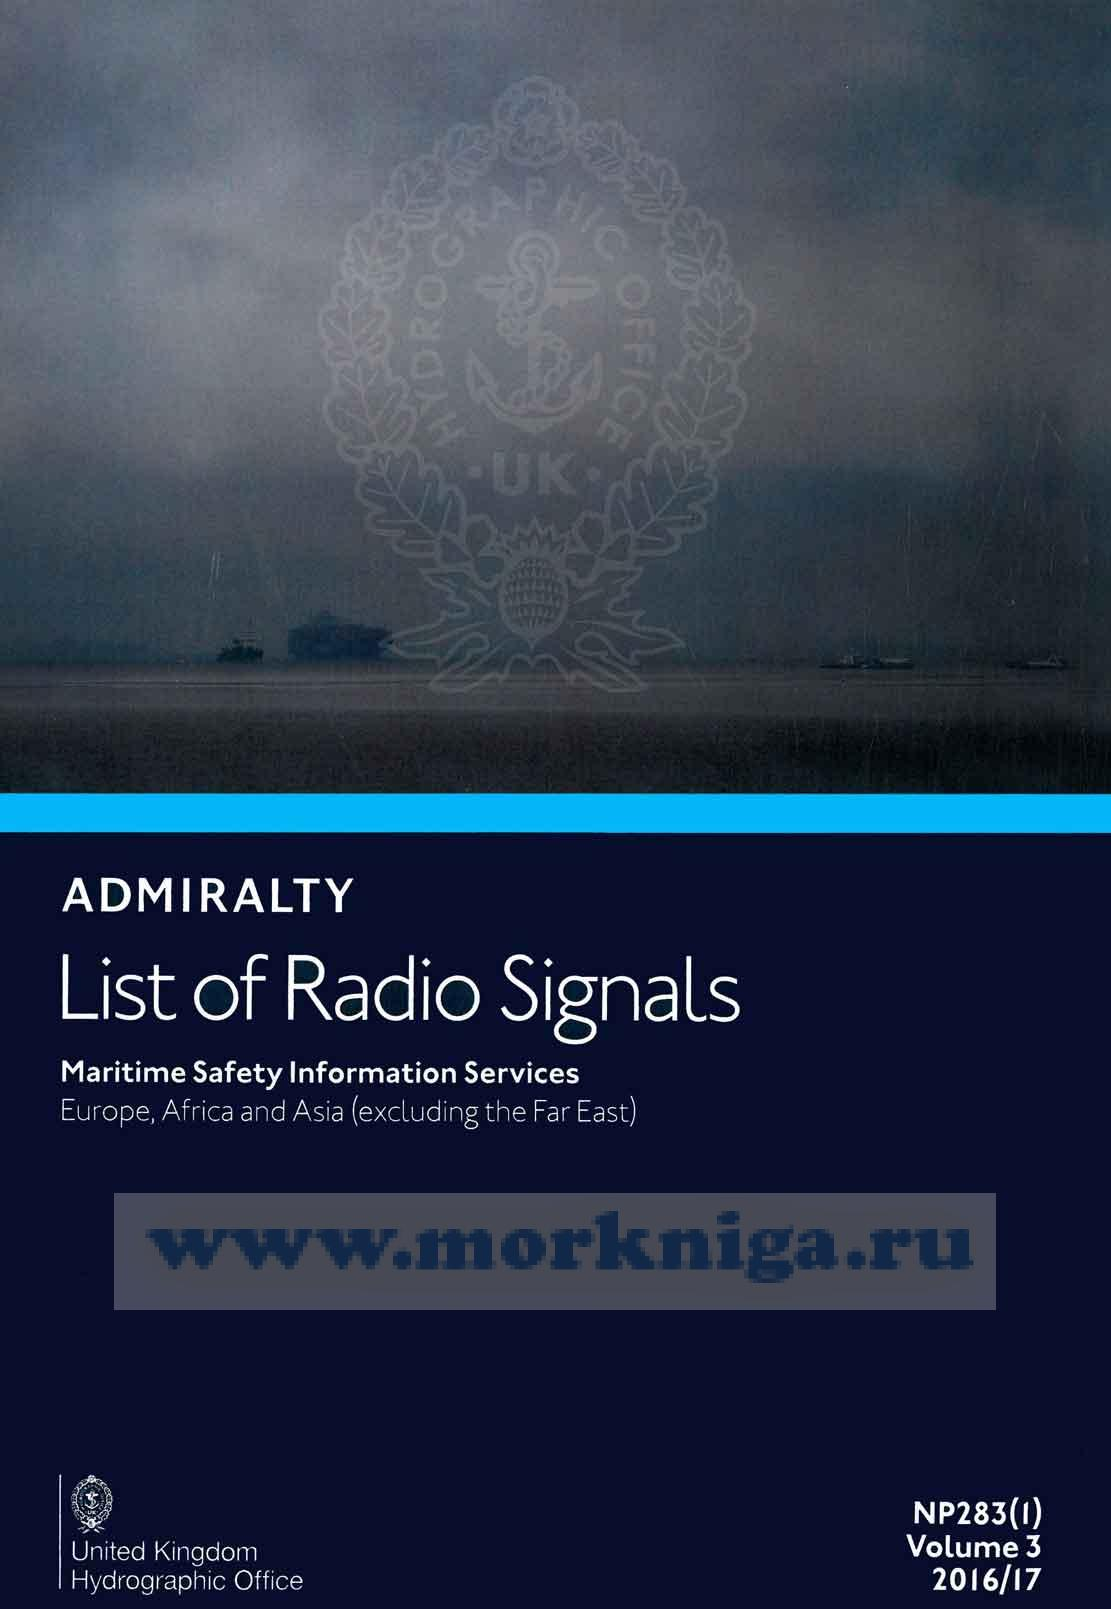 Admiralty list of radio signals. Vol 3. NP283(1) (ALRS). Maritime safety information services. Europe, Africa and Asia (excluding the Far East) 2016/2017